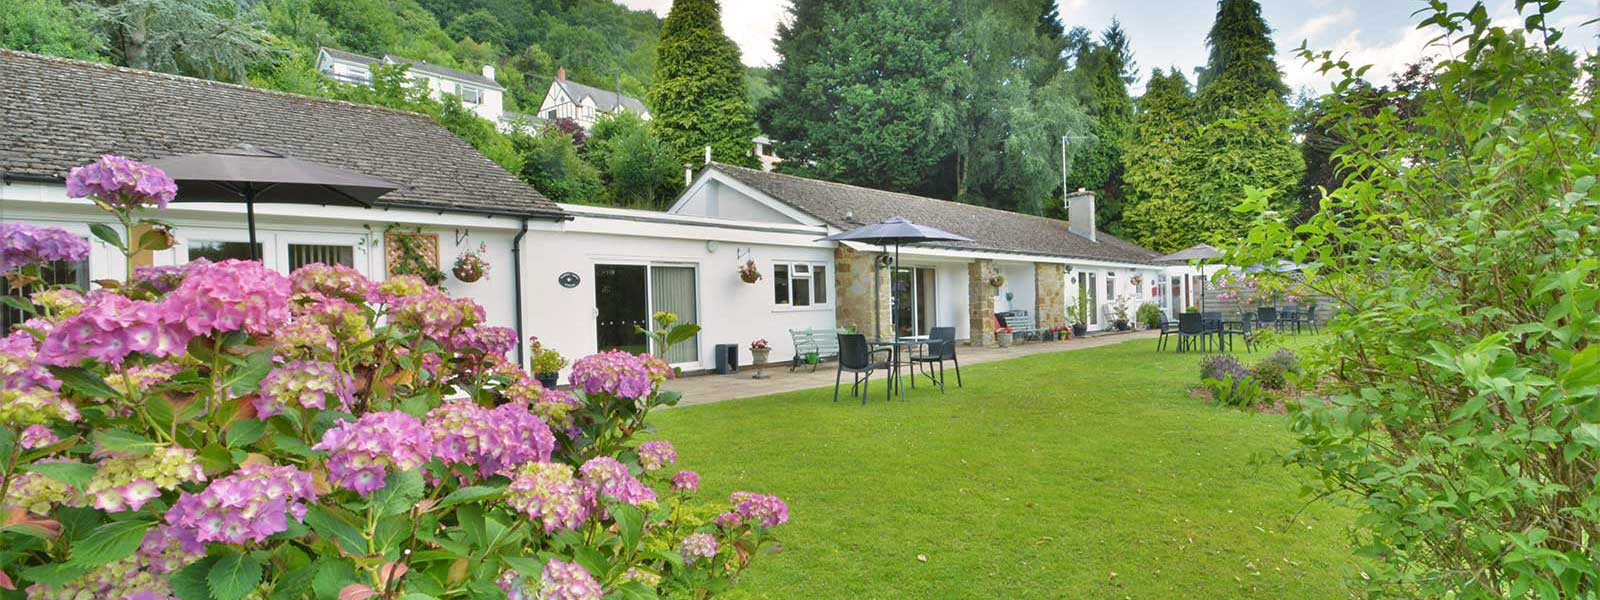 Self catering holiday accommodation in the Wye Valley at Paddocks Cottages